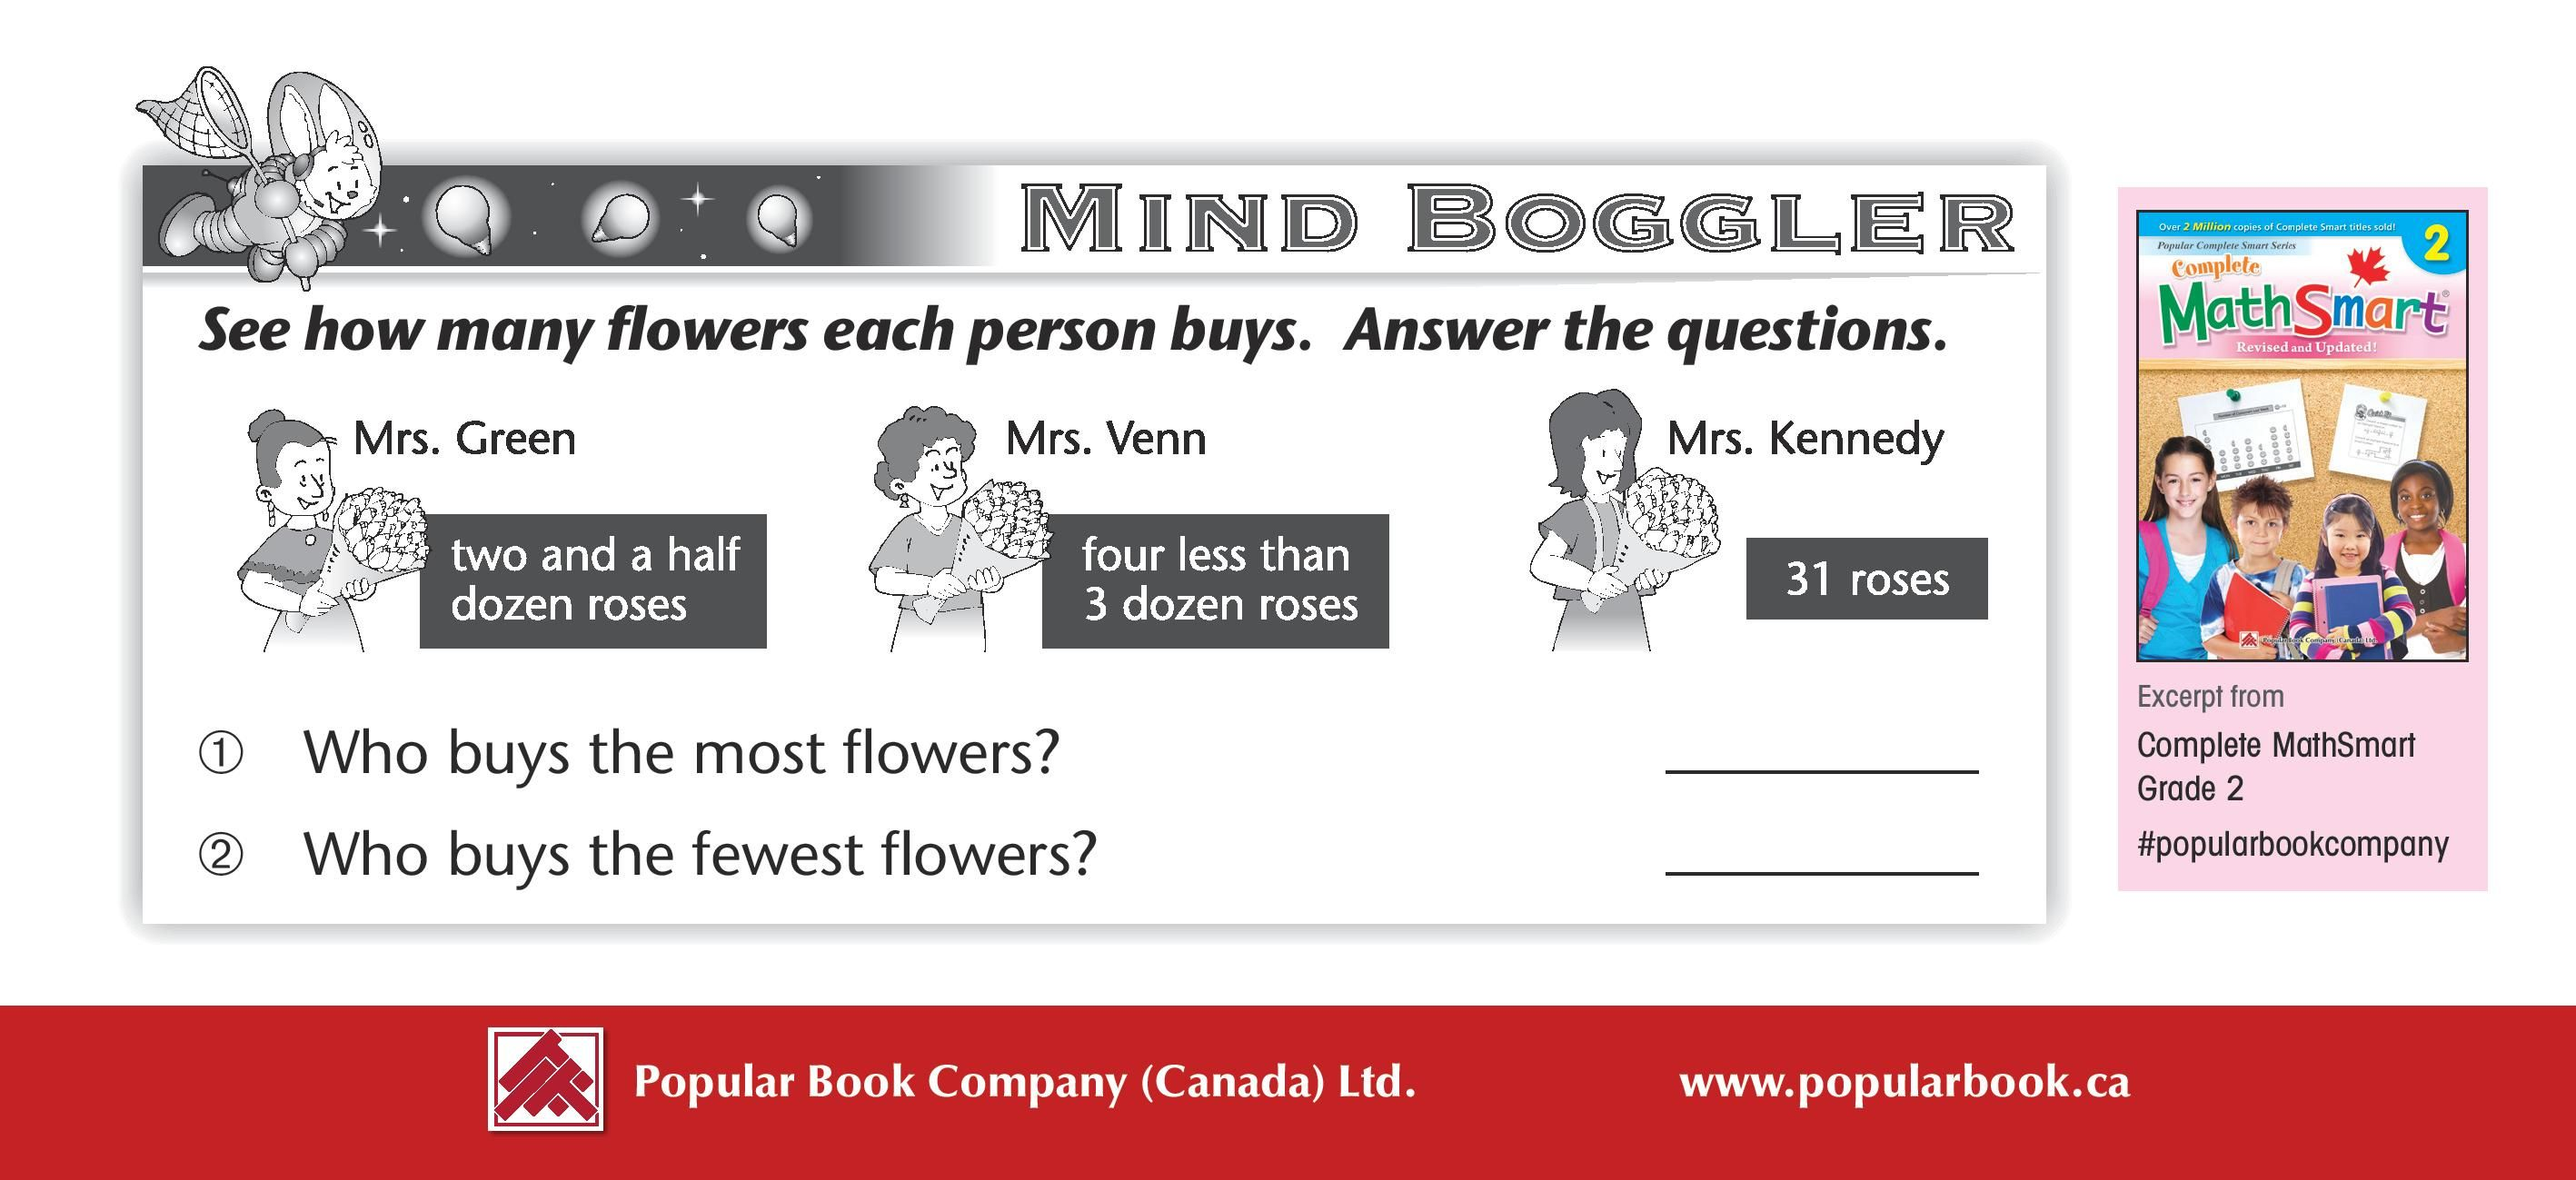 Mindboggler For Grades 1 To 3 Mrs Green Buys Two And A